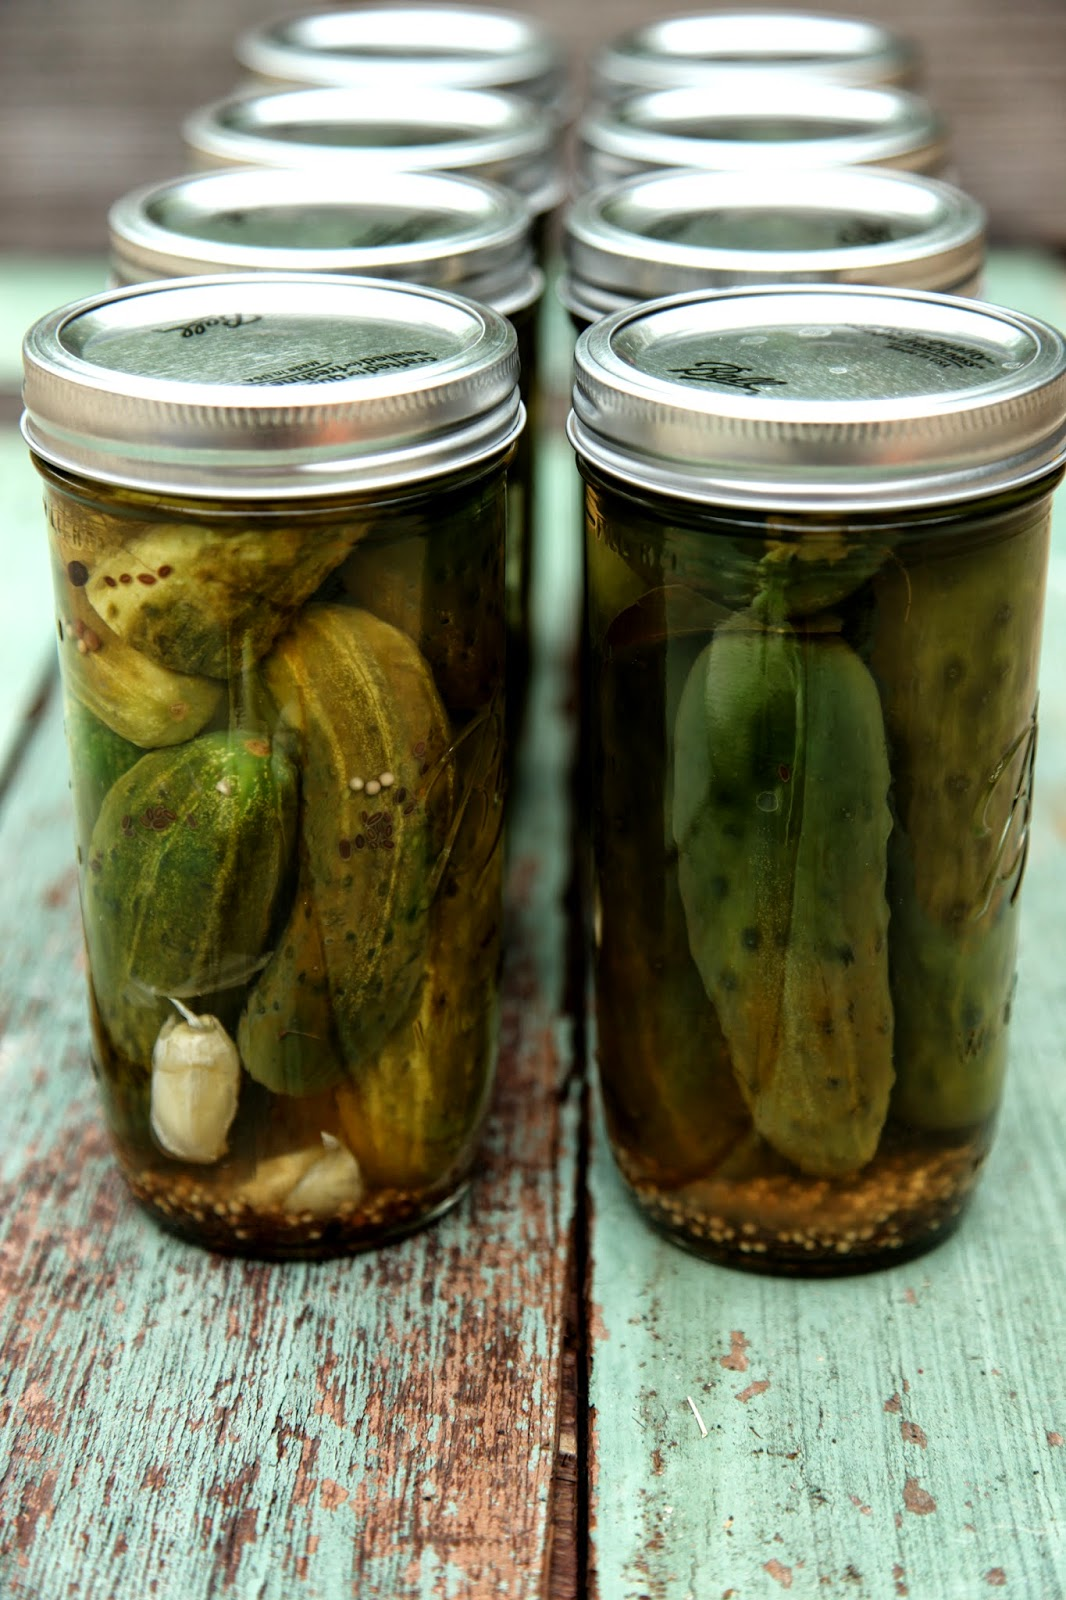 Dolce Fooda: How to Make Homemade Pickles?